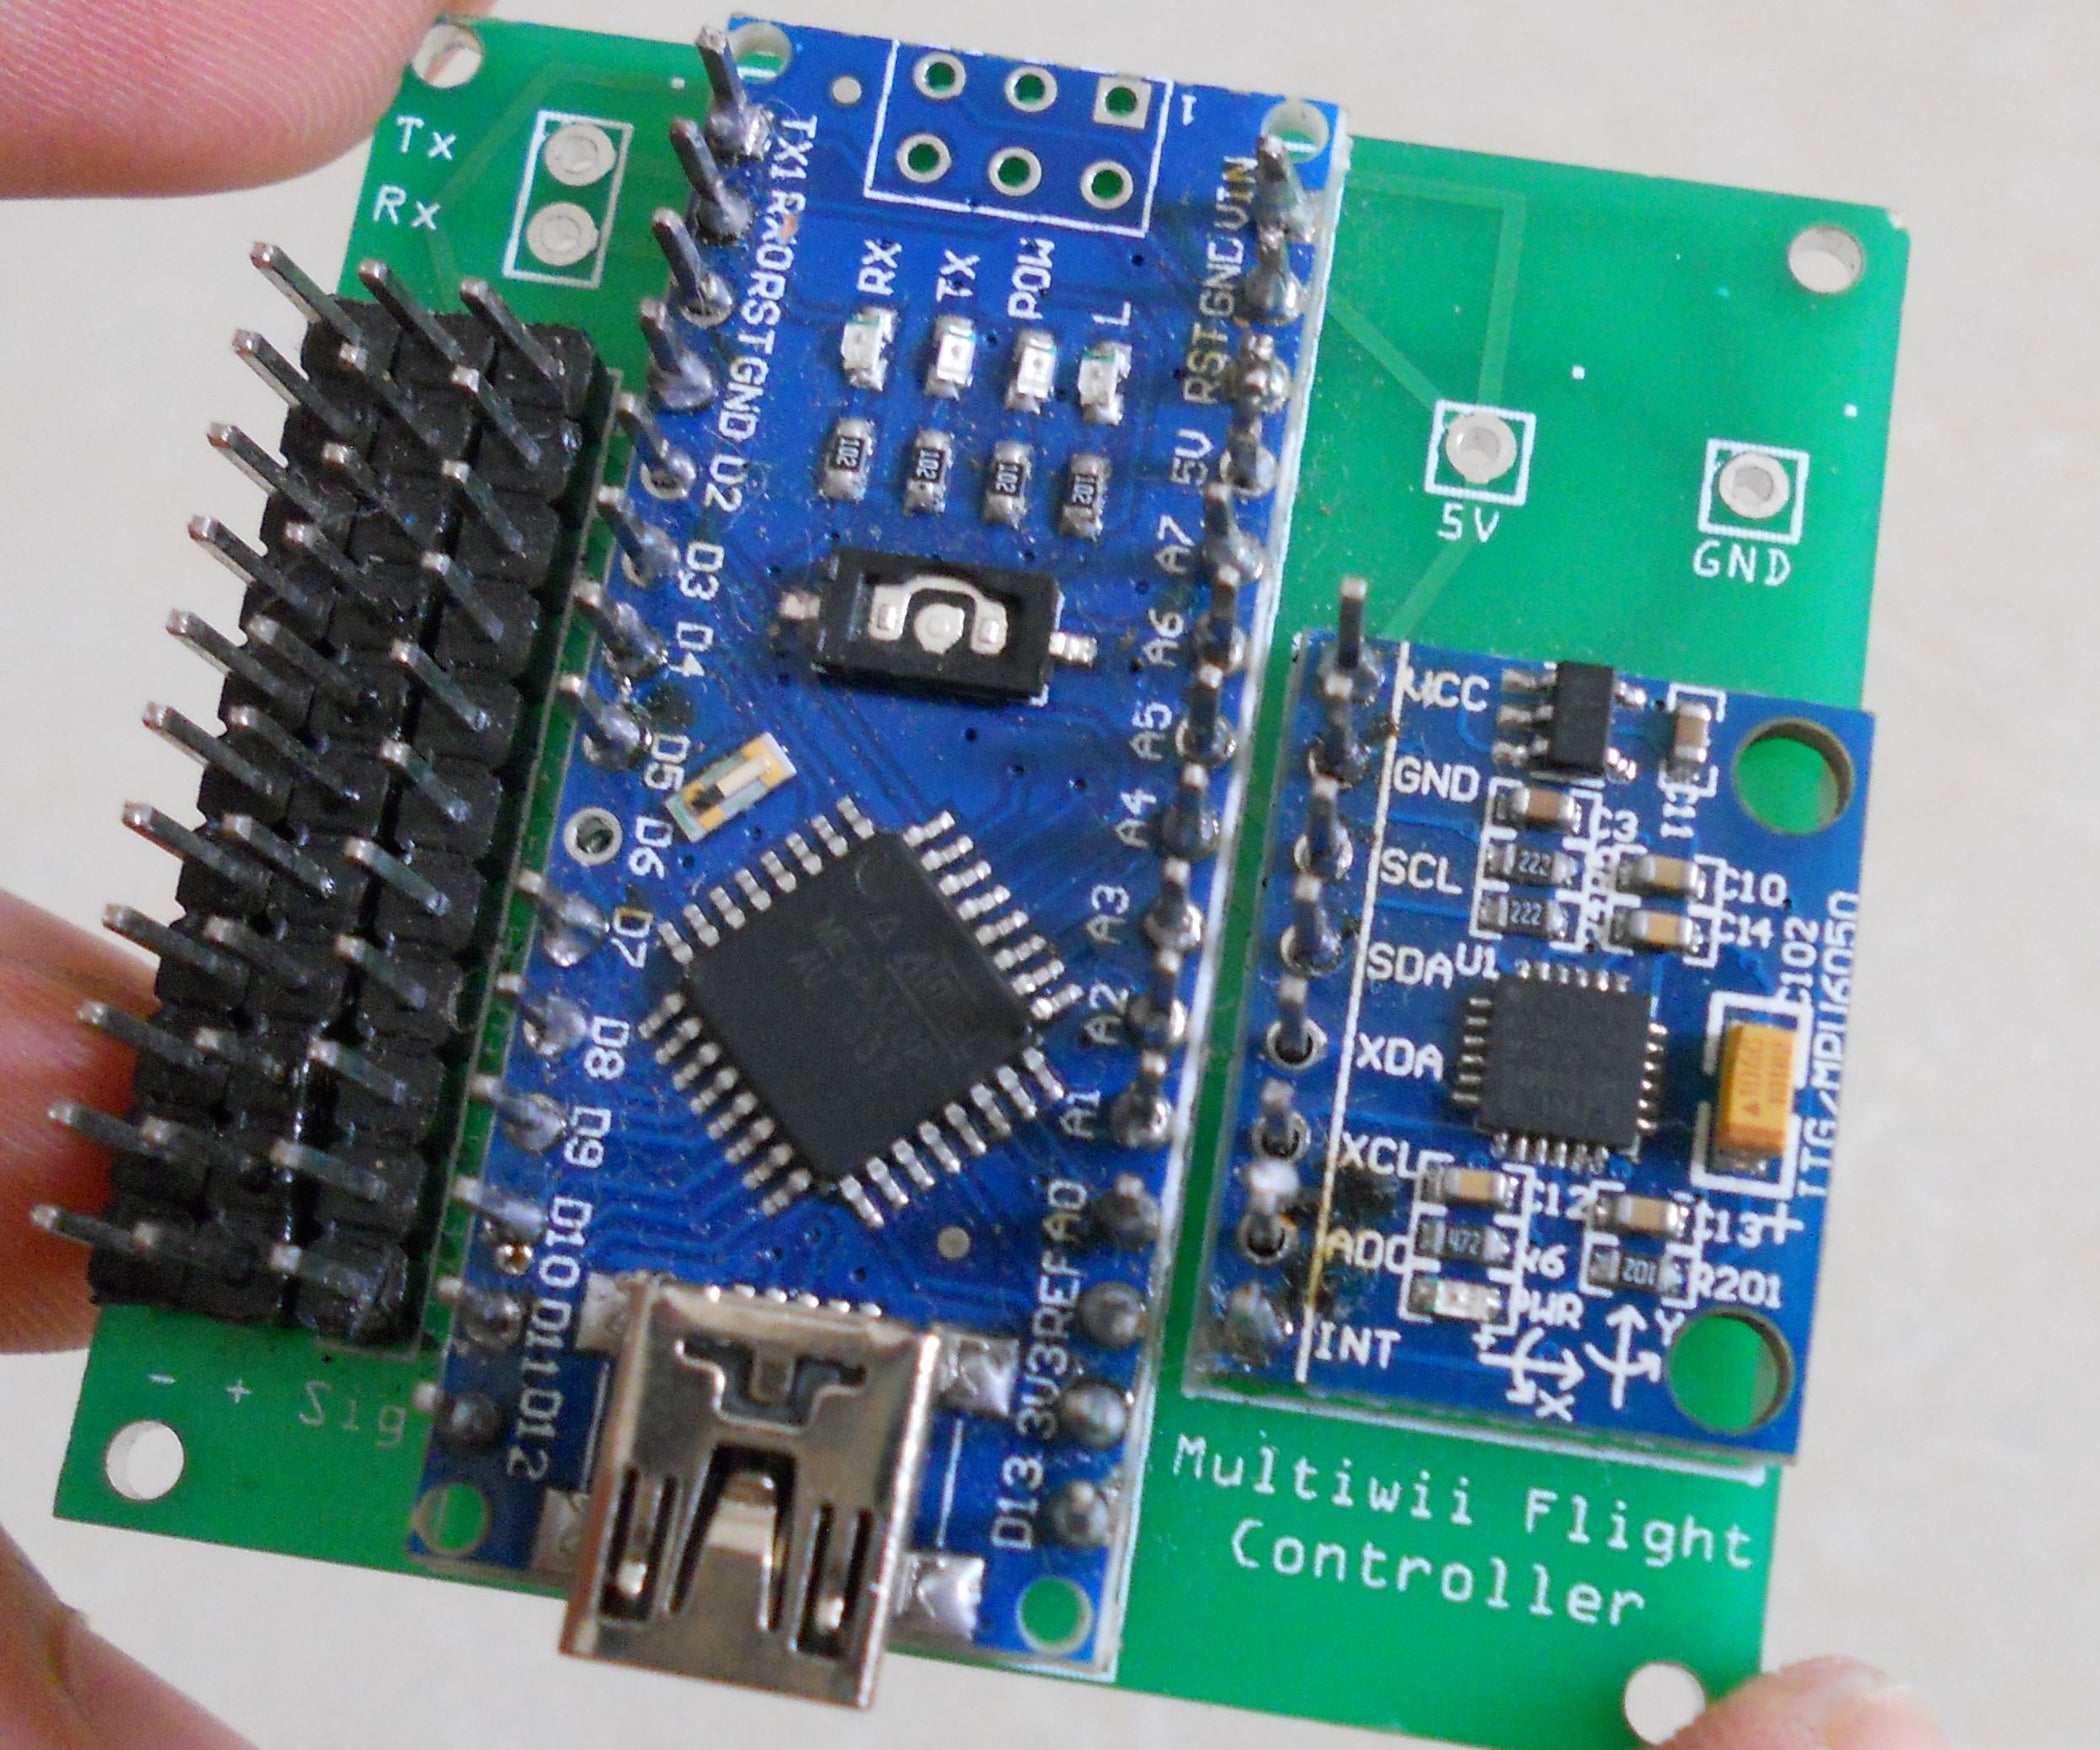 diy arduino controled multiwii flight controller: 7 steps (with pictures)